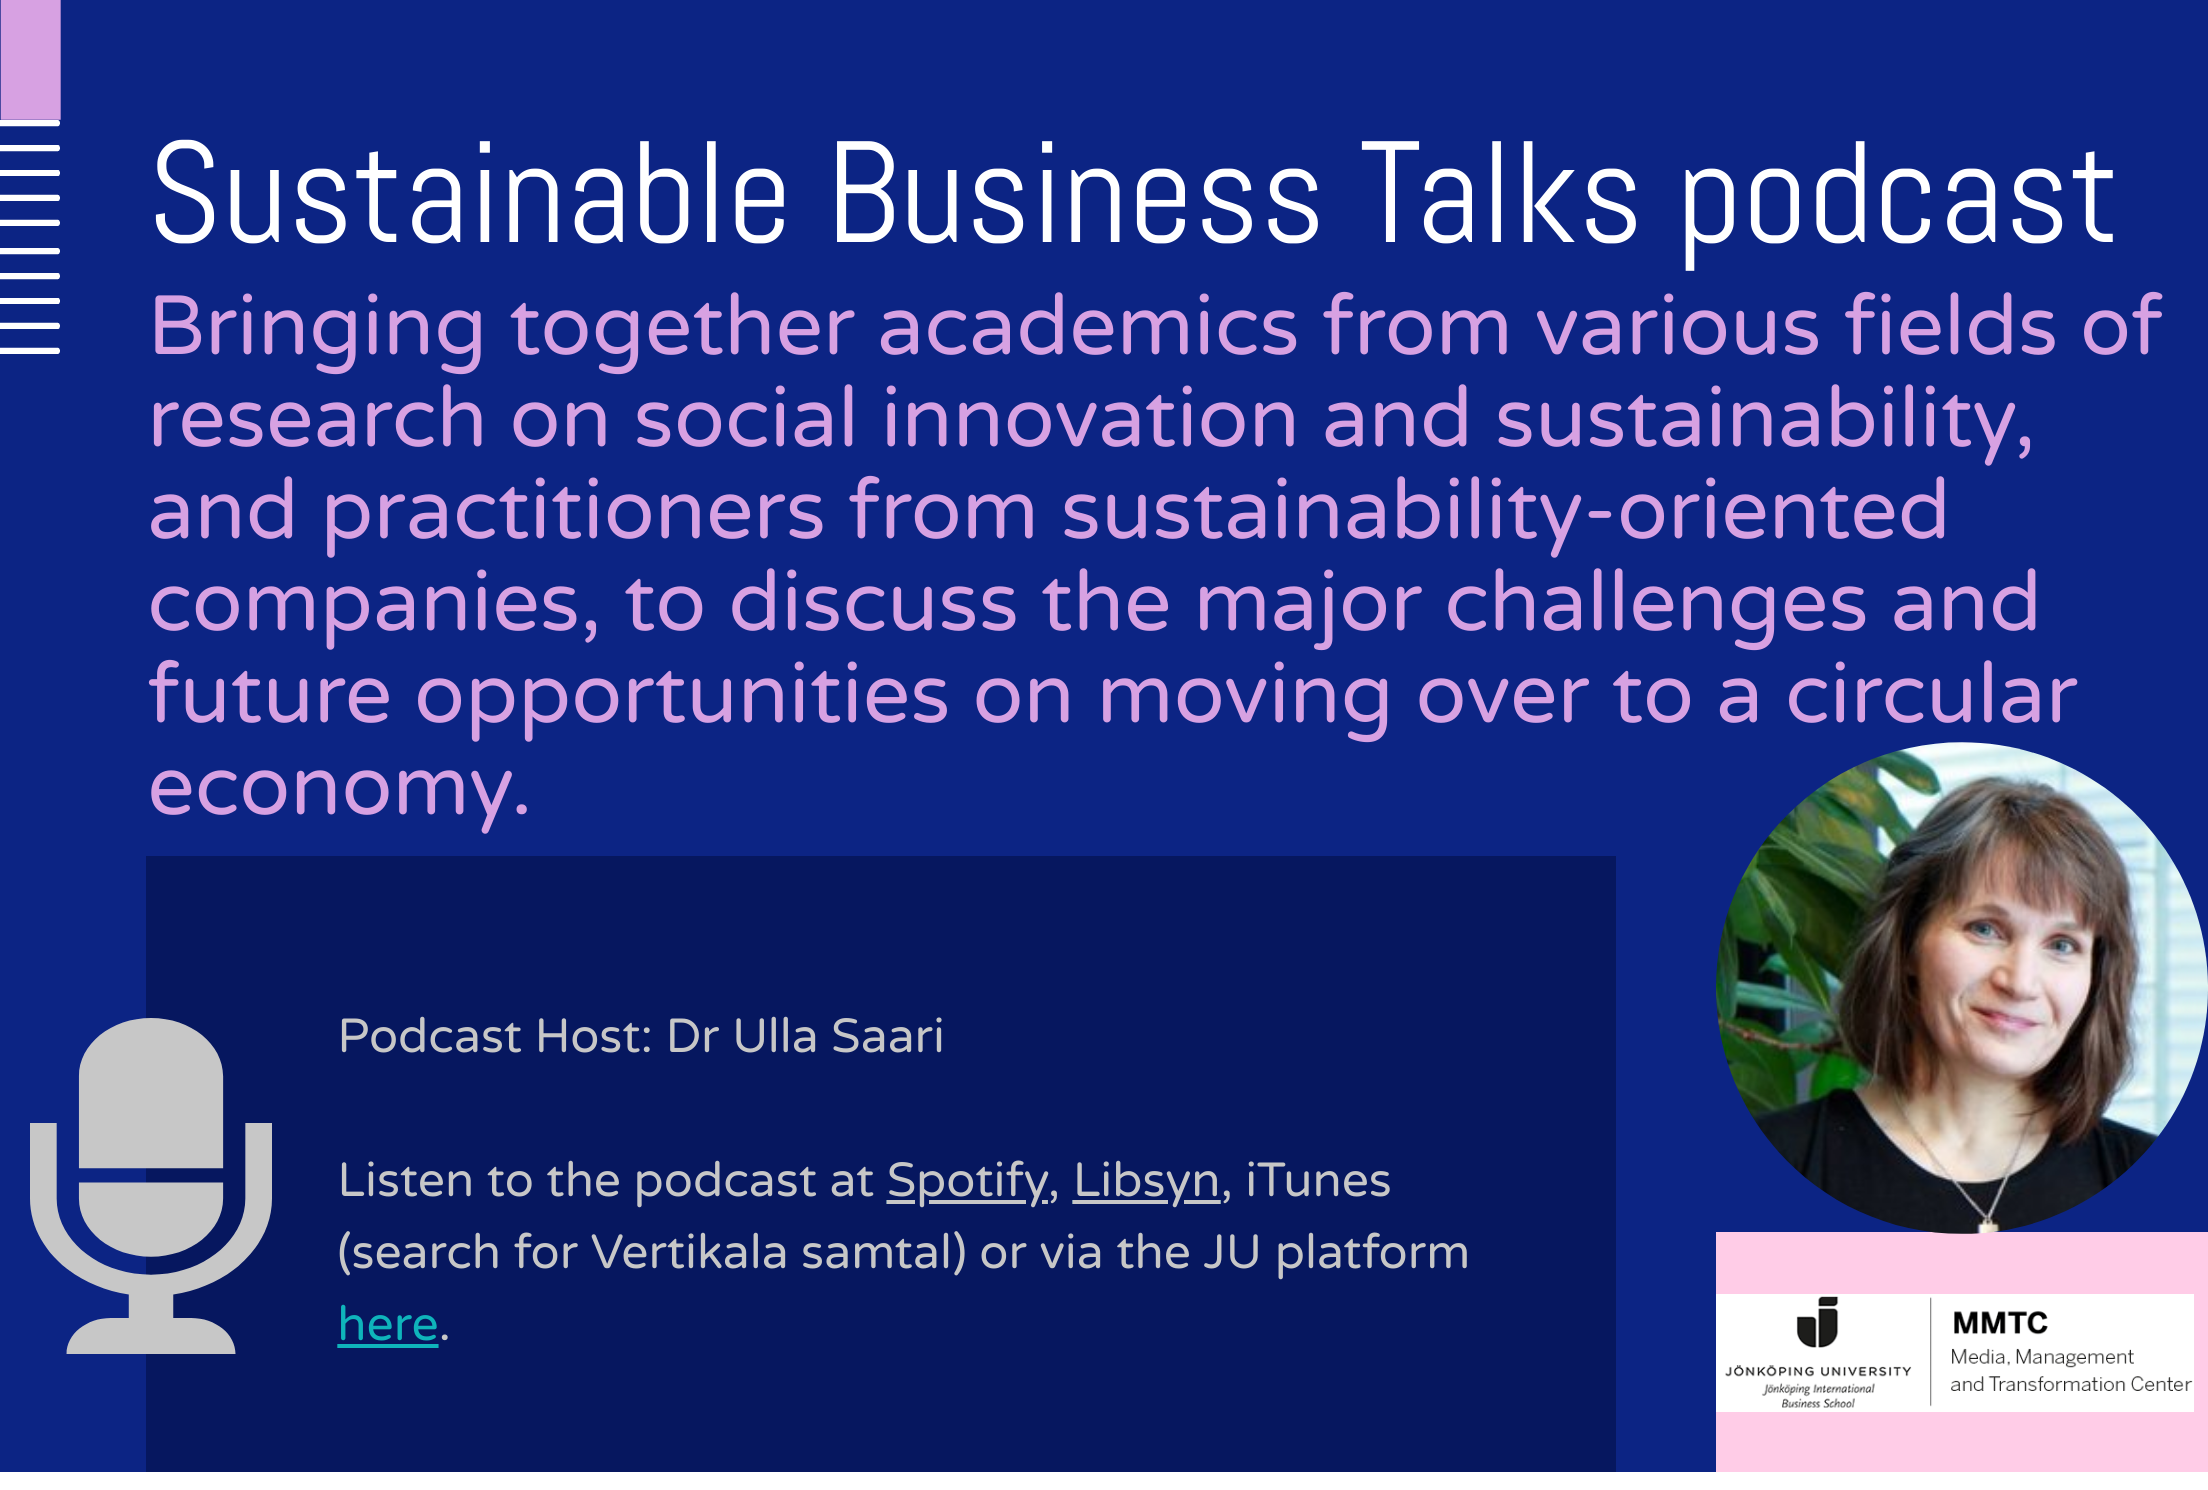 Sustainable Business Talks podcast hosted by MMTC bringing together researchers and practitioners to discuss sustainability issues